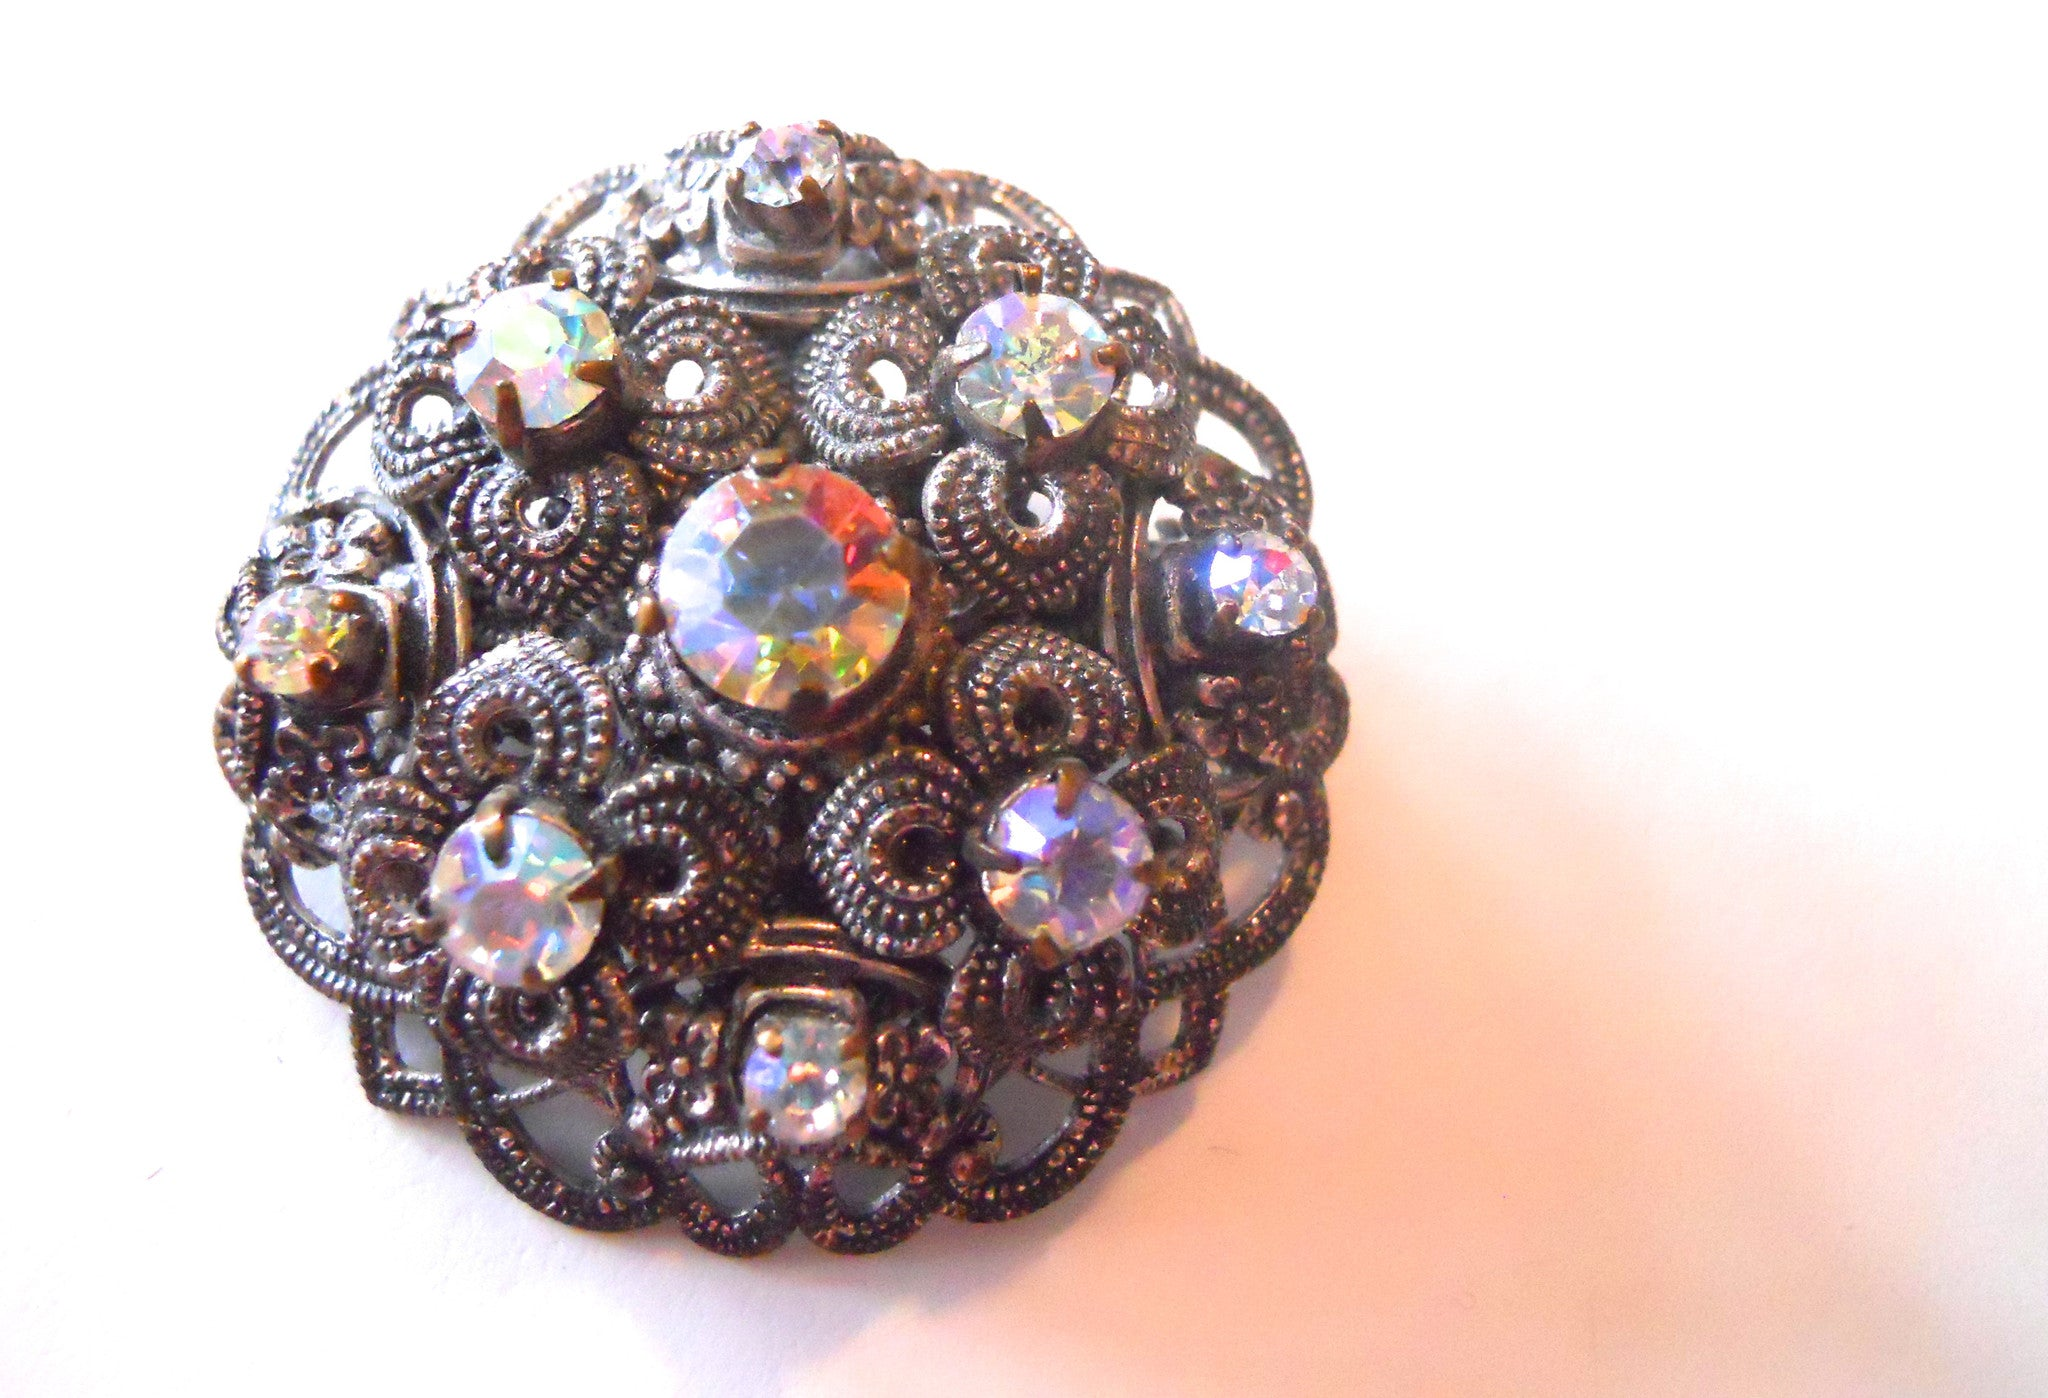 Iridescent Rhinestone Filigree Domed Brooch circa 1960s